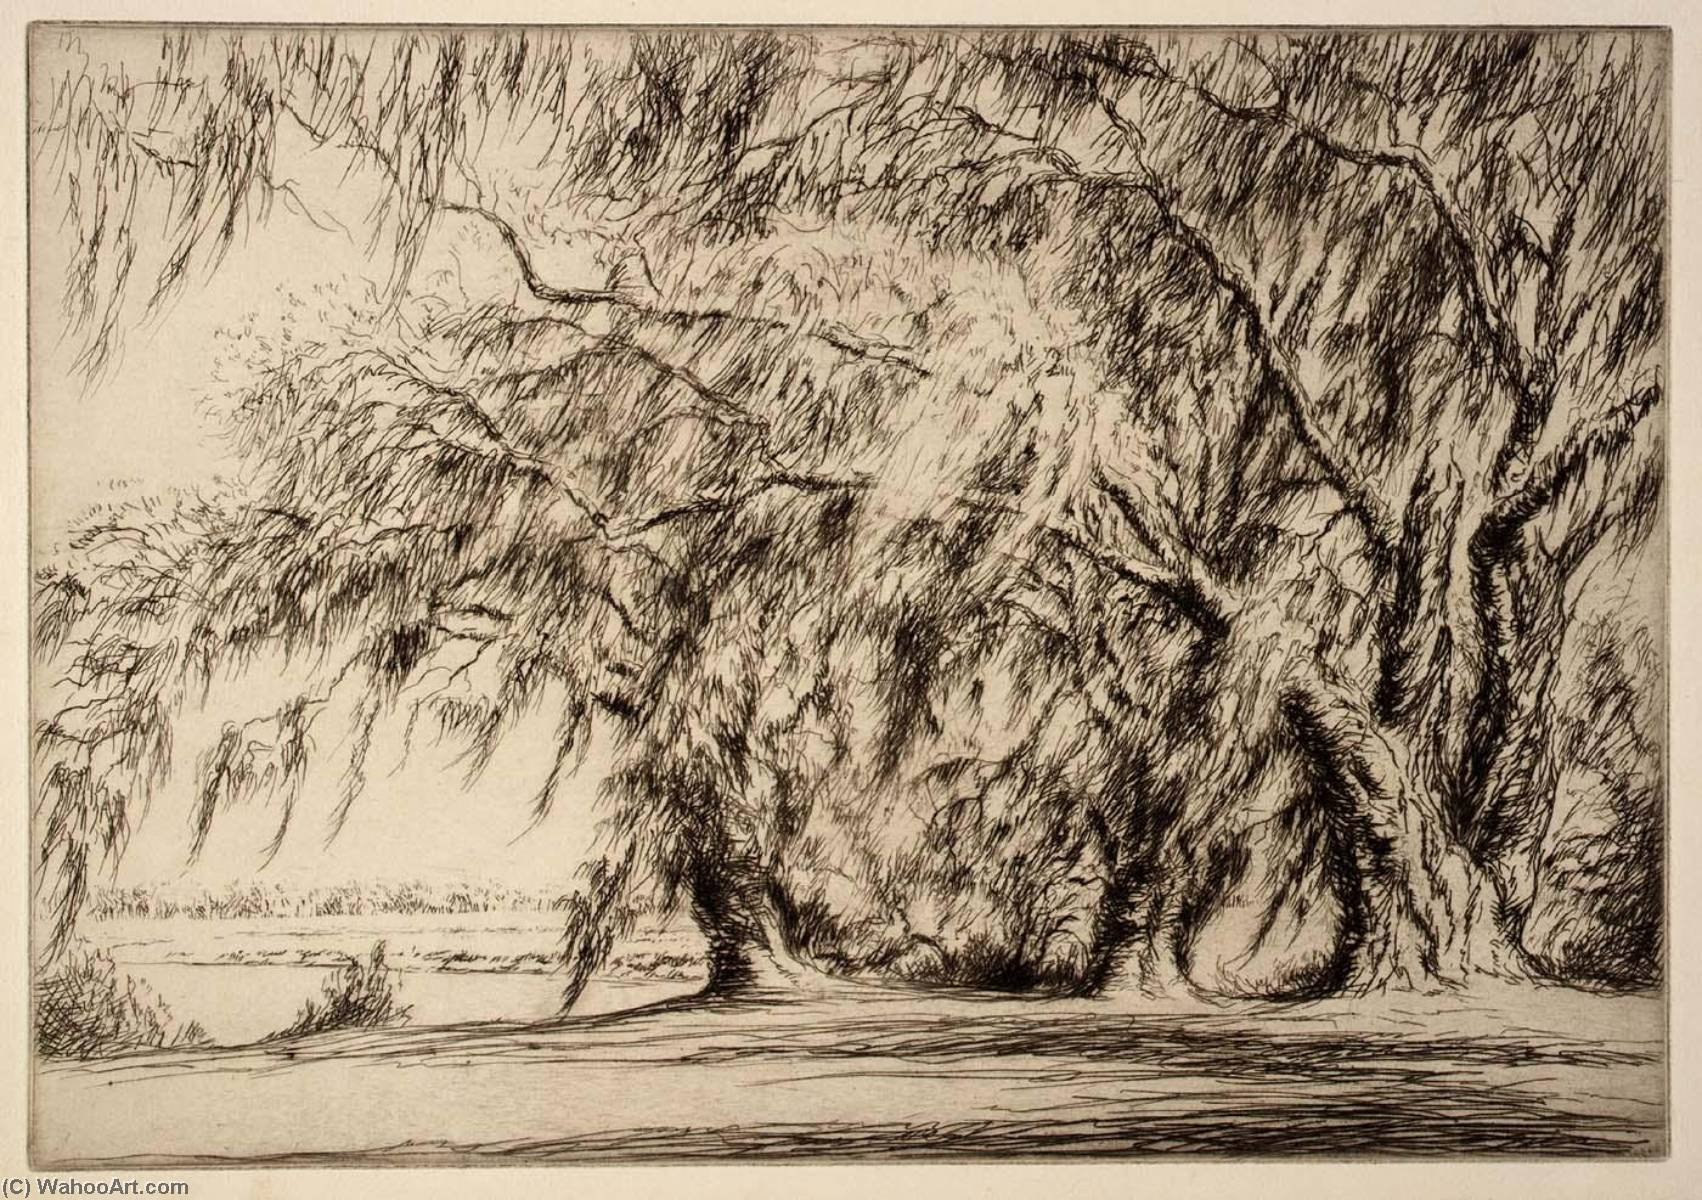 Order Museum Quality Reproductions : Oaks and Moss, 1940 by Kerr Eby | WahooArt.com